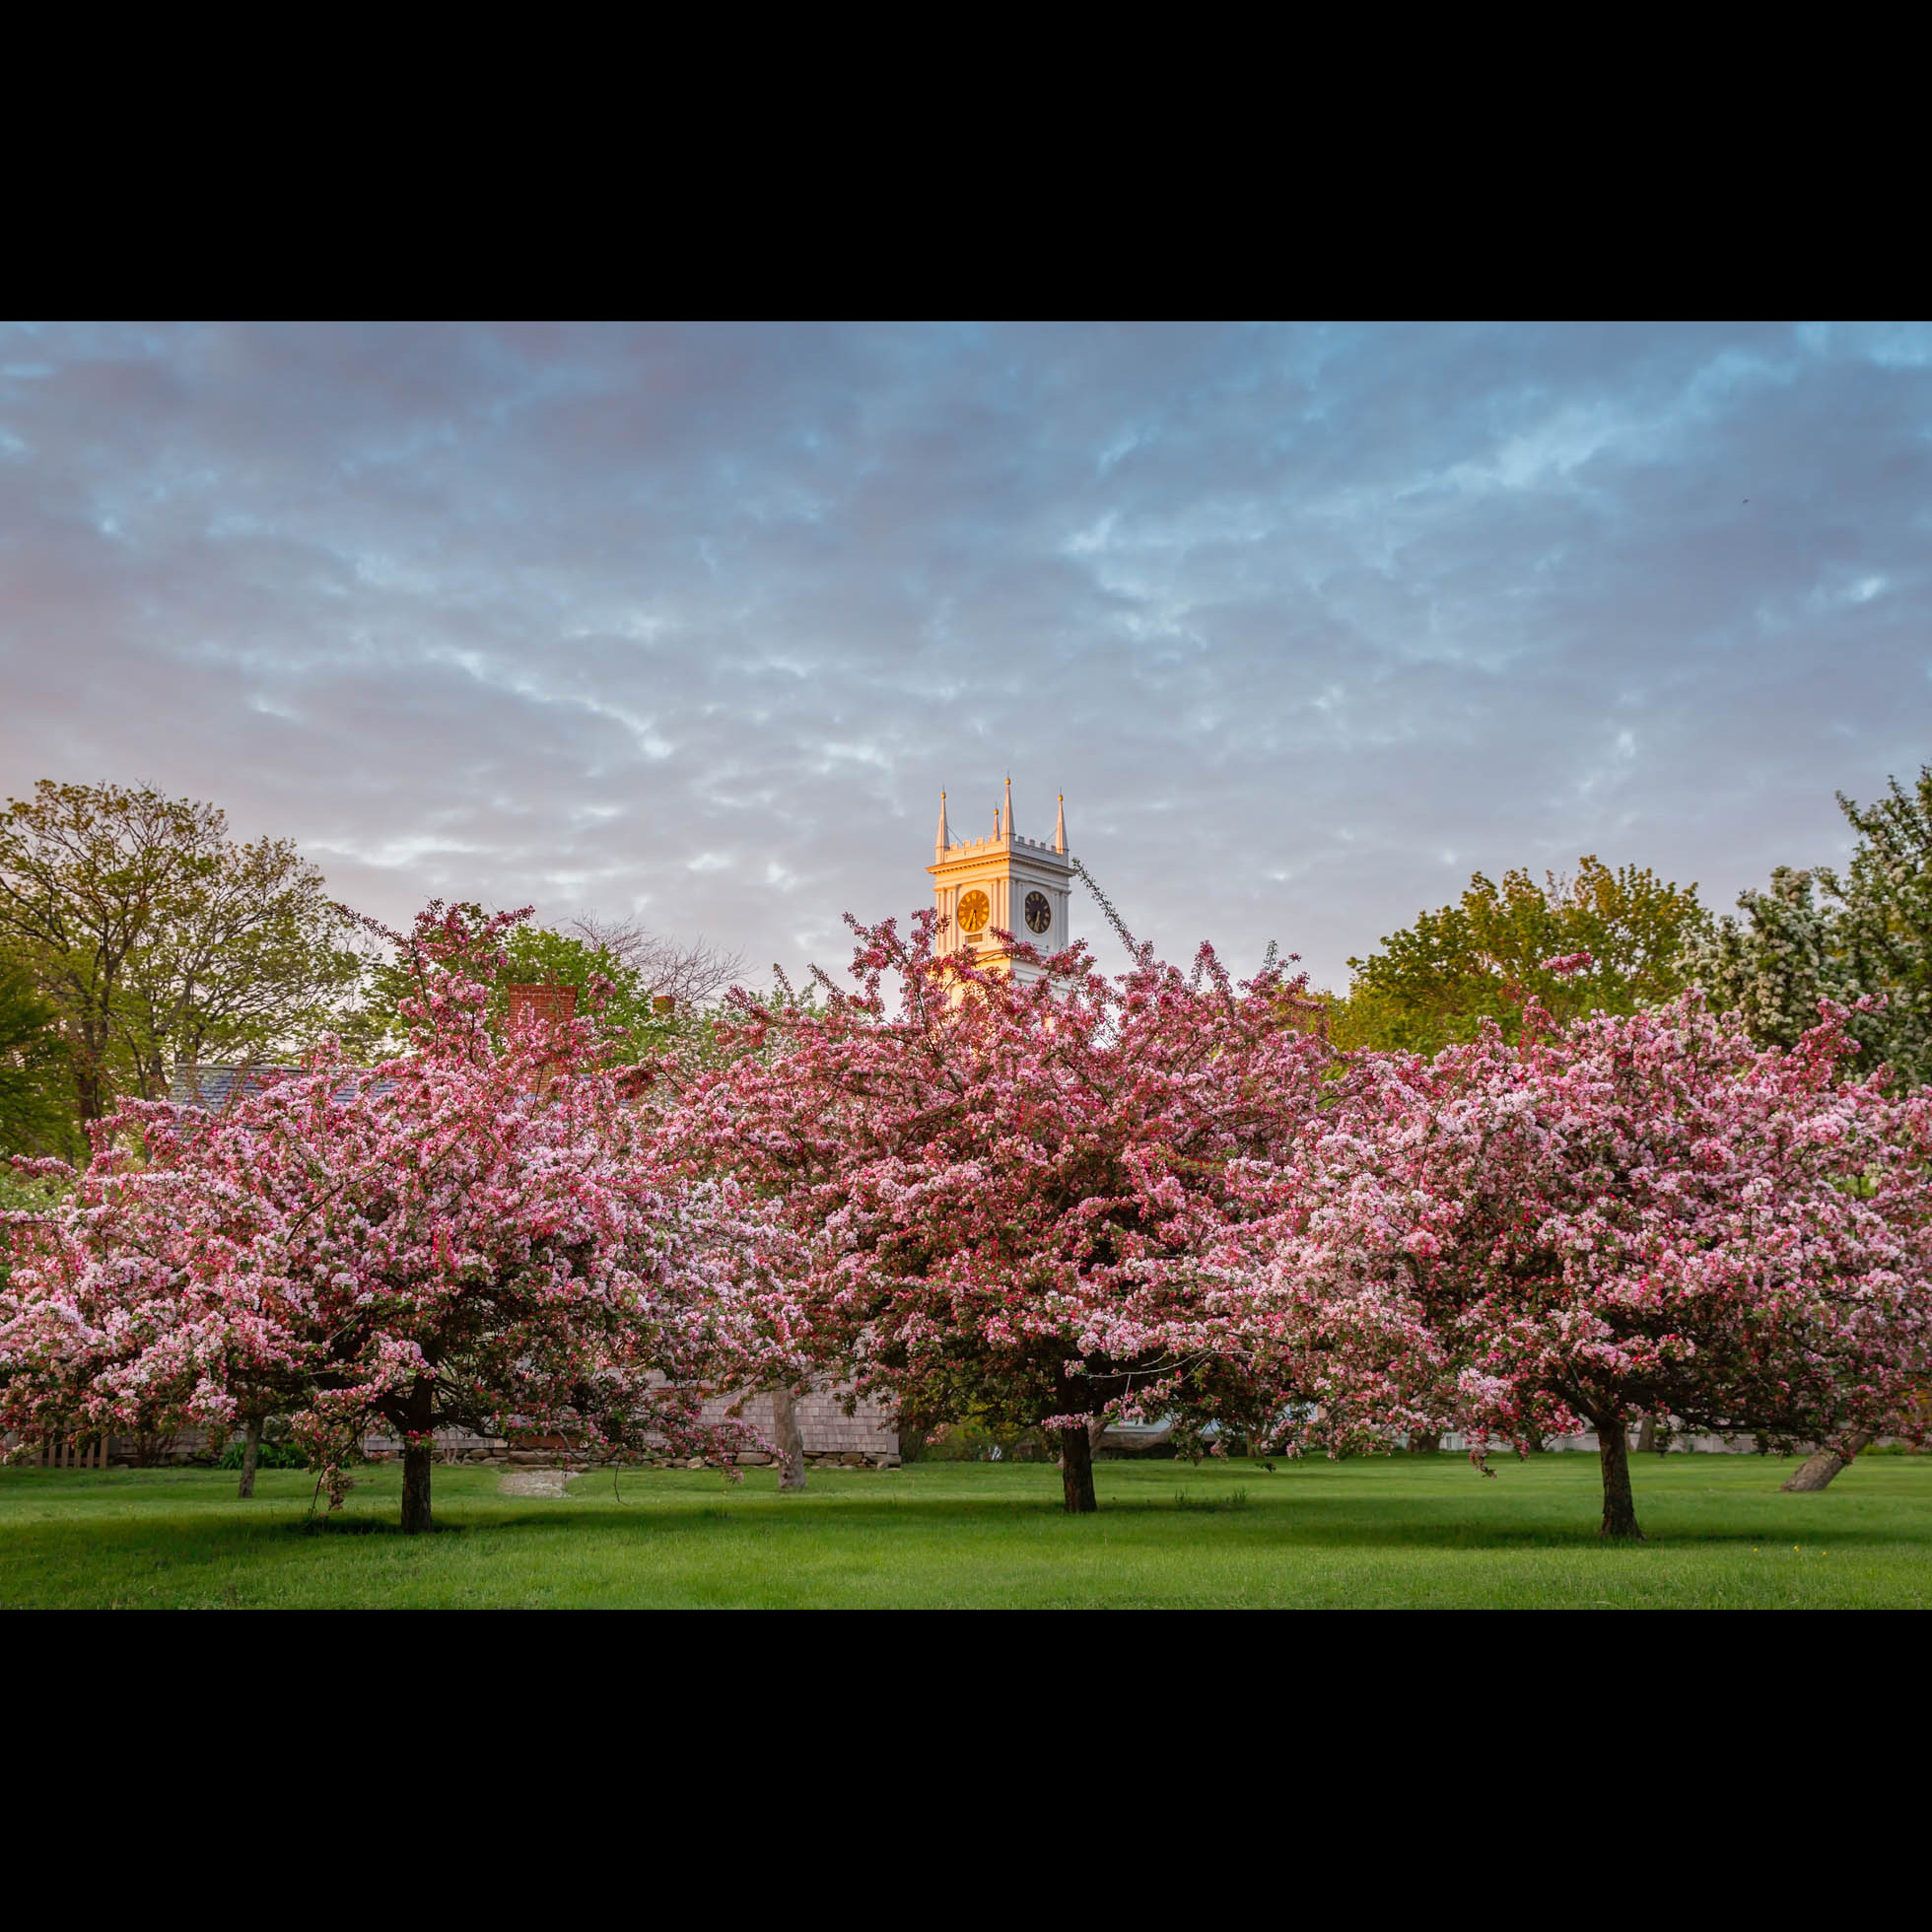 5.16 WHALING CHURCH BLOSSOMS